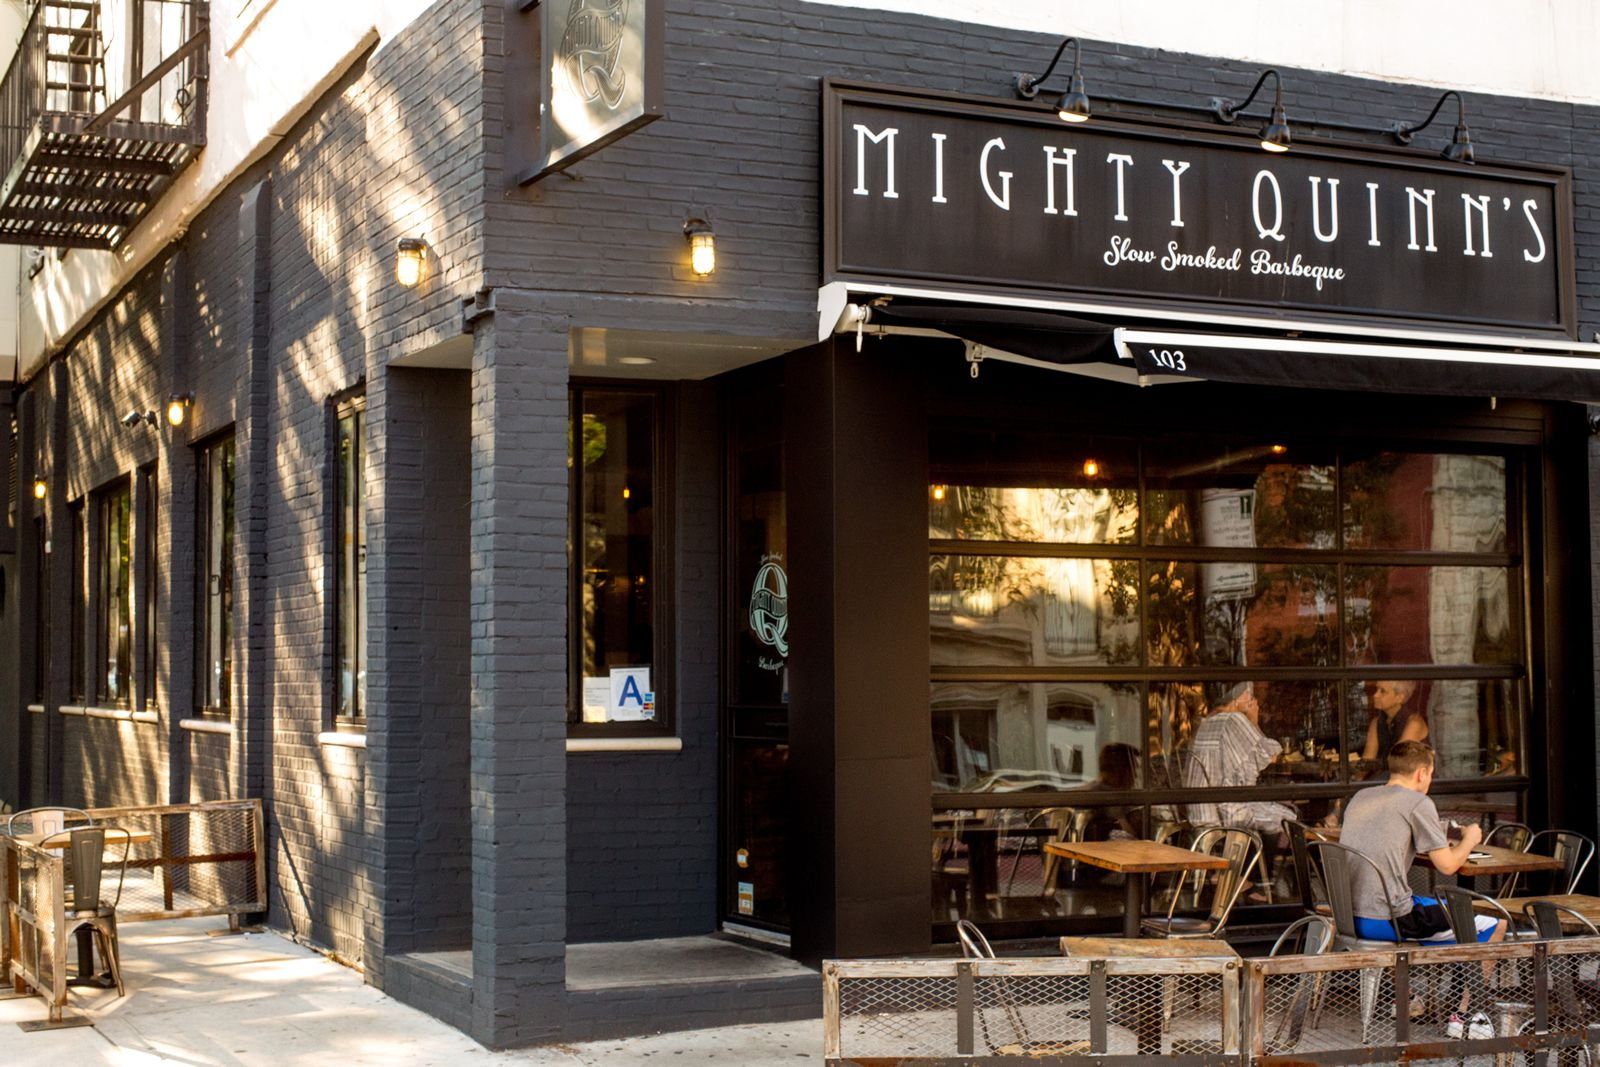 After Defining Urban BBQ in New York City; Mighty Quinn's Barbeque Launches Franchise Opportunity to Bring one of New York City's Top Restaurants to Cities Across the U.S. Through Aggressive Expansion